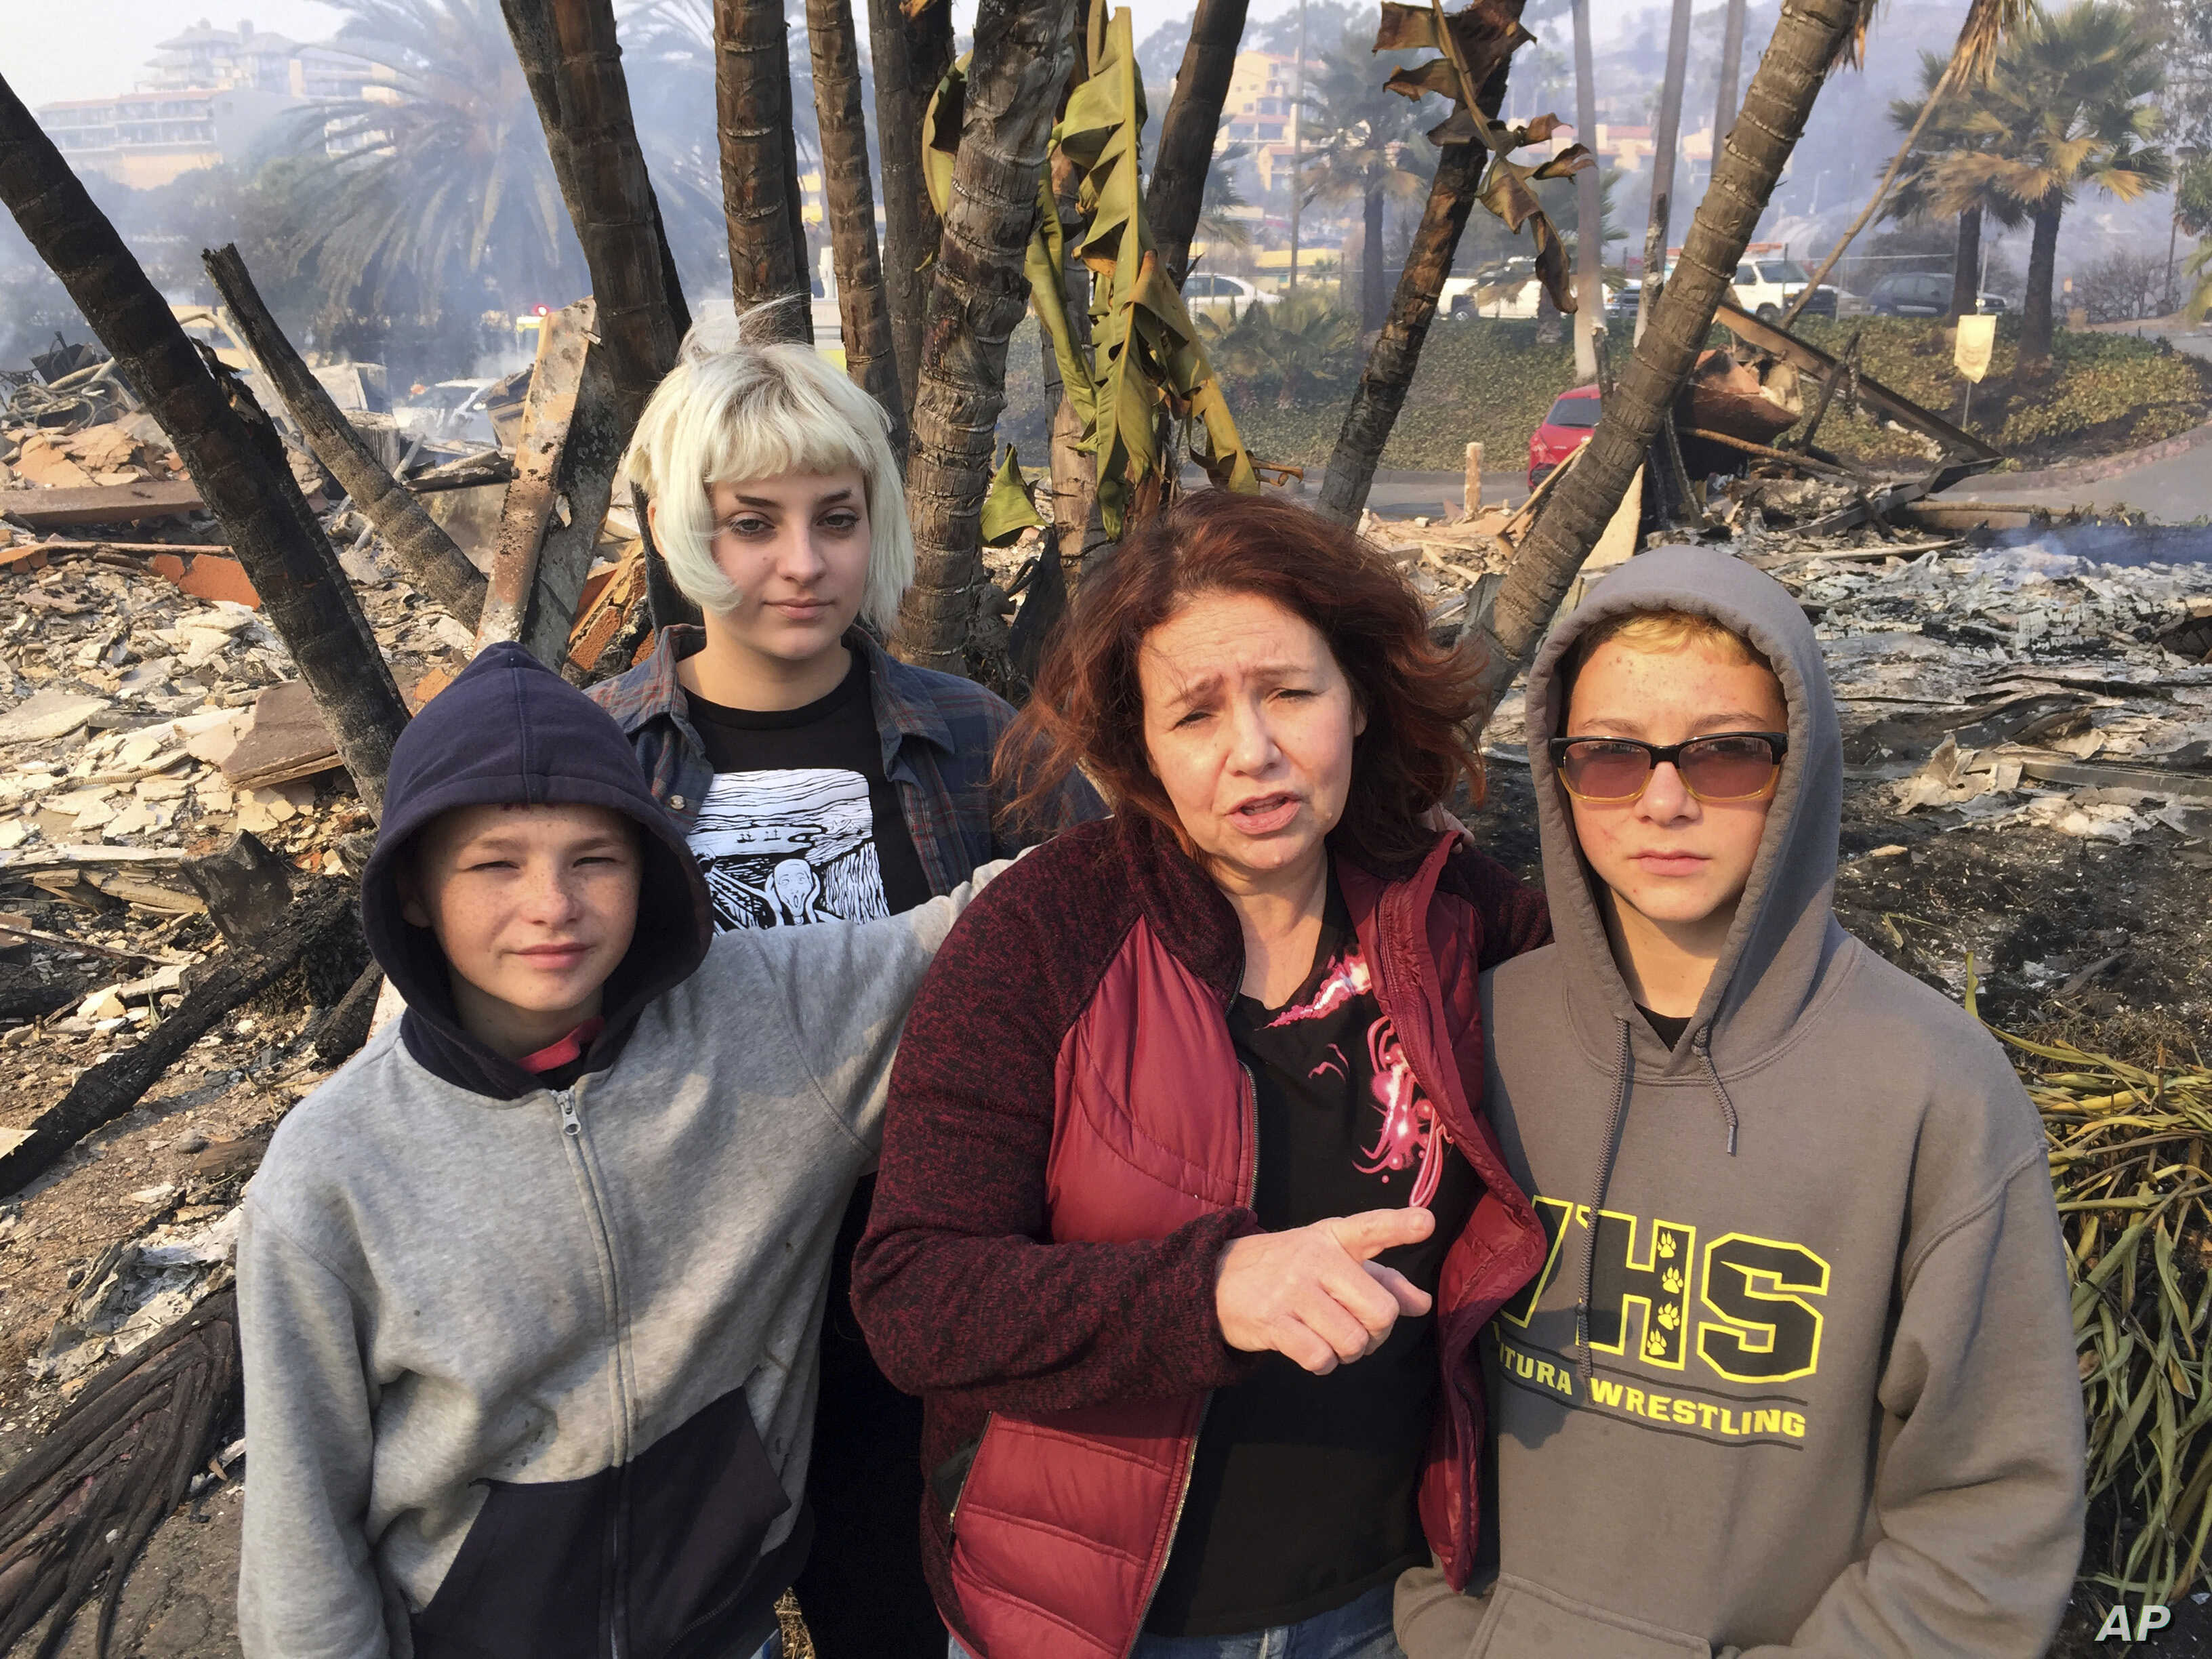 Lisa Kermode, second from right, and her children, from left, Damien, Lola and Michael, stand outside the ruins of their home after a wildfire swept through Ventura, Calif., Dec. 5, 2017. They were home Monday night when Lisa started to smell smoke a...